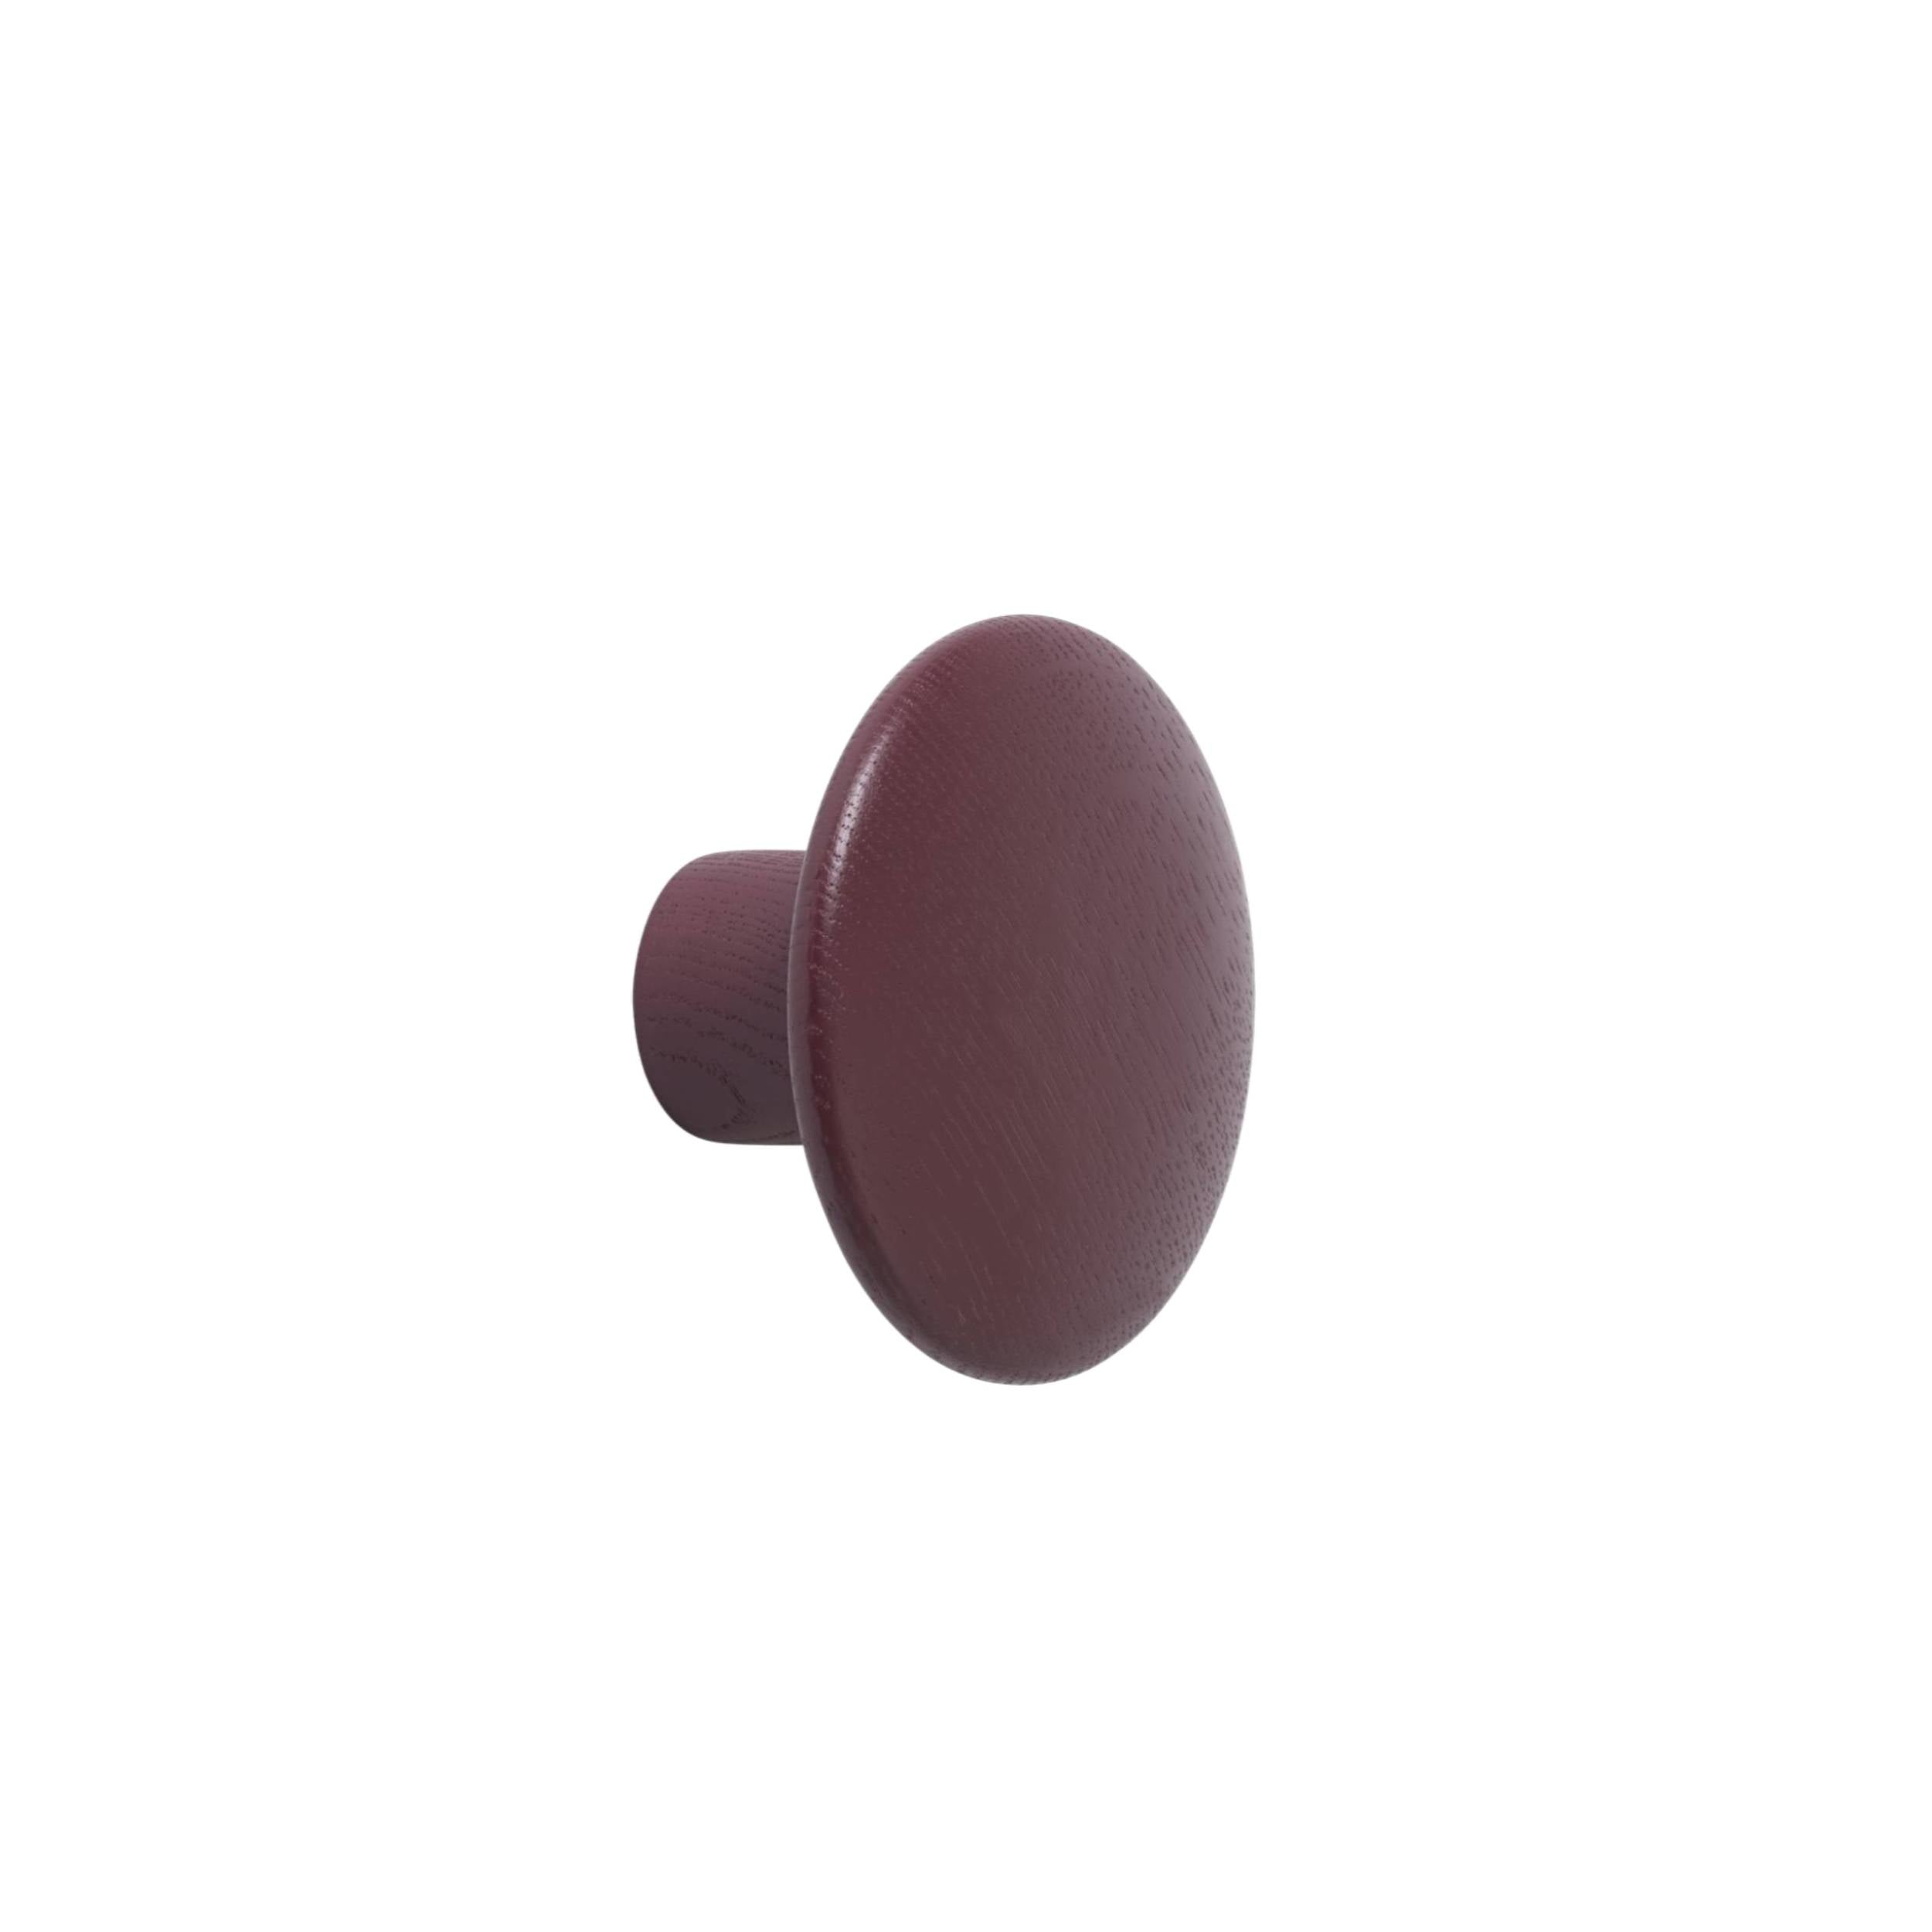 The Dots Wall Hooks: Burgundy + Small